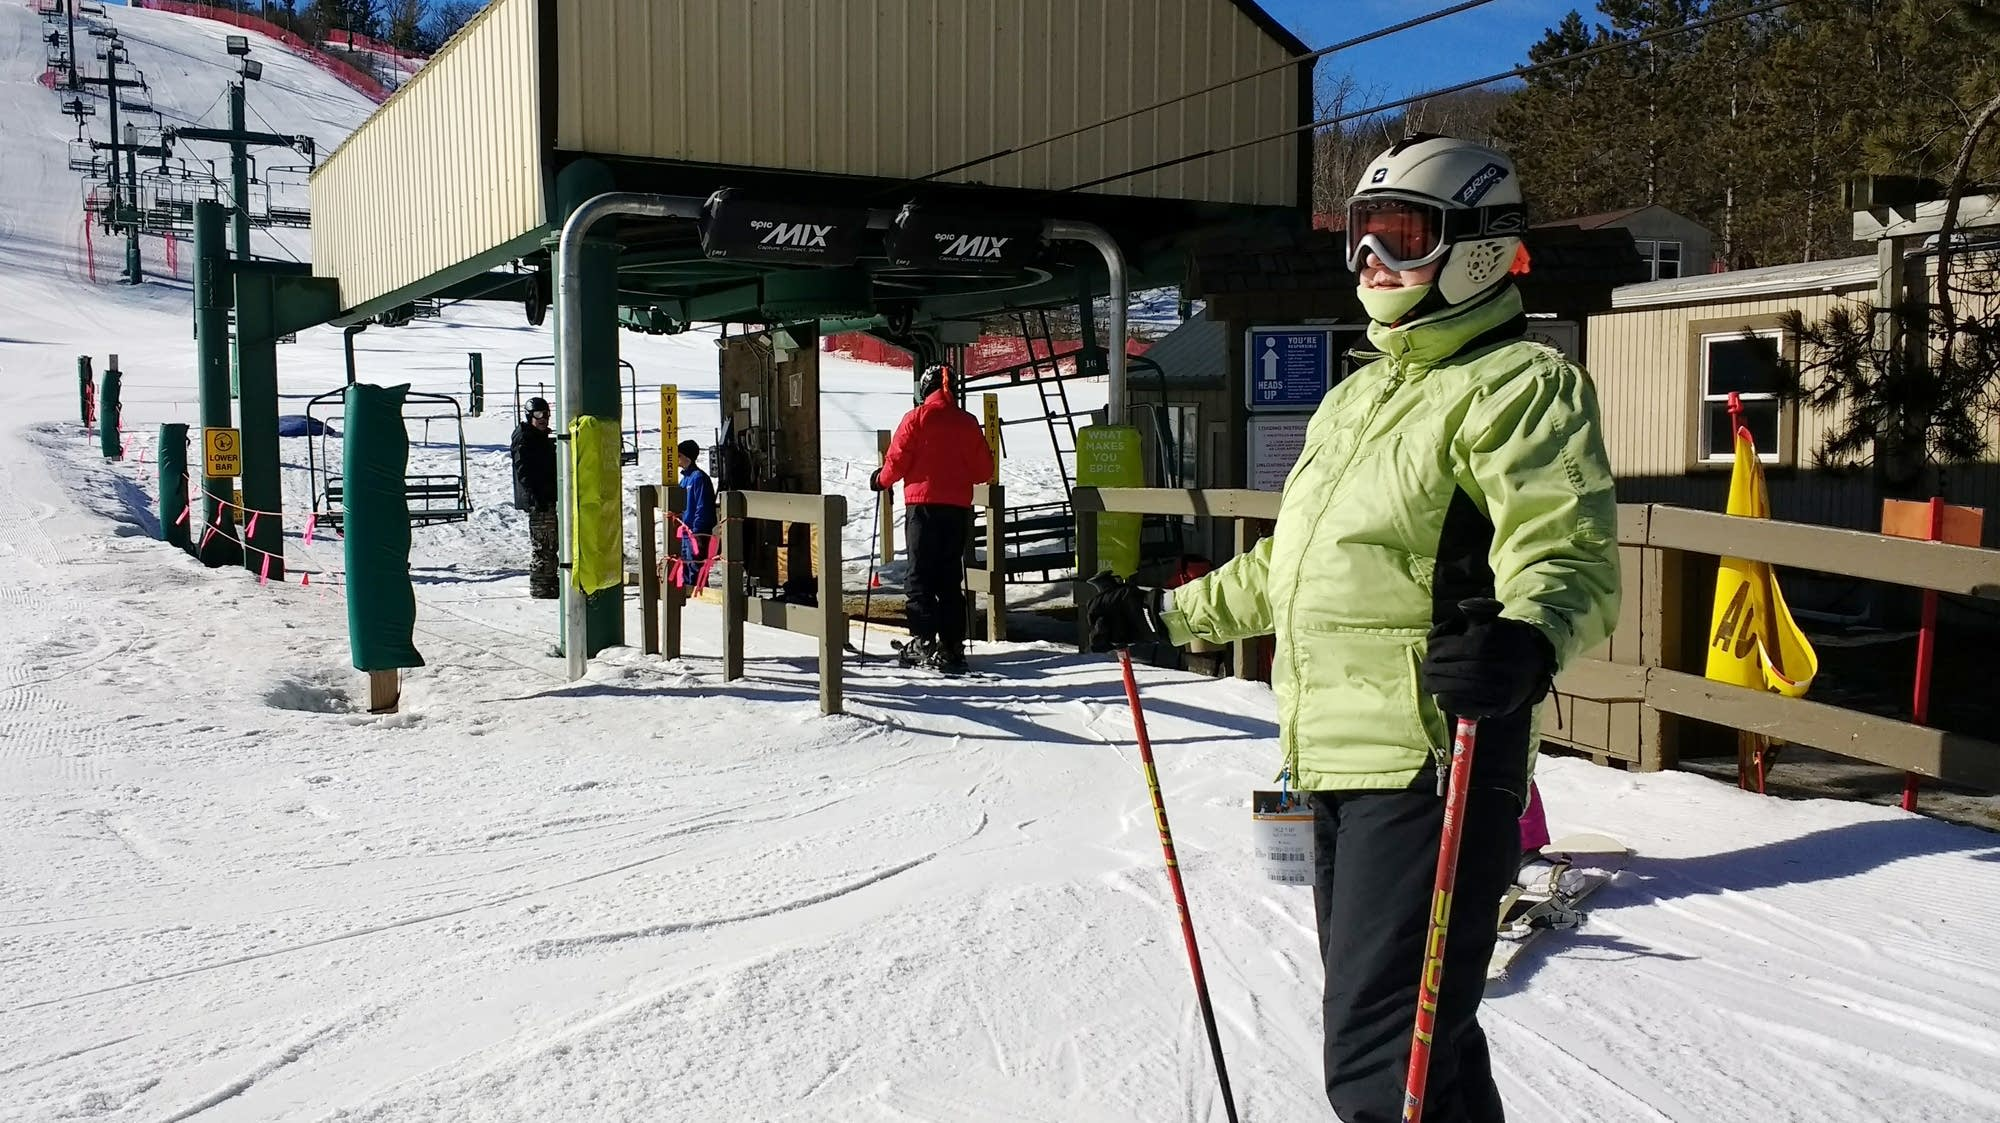 Bonnie Condit skis at Afton Alps.